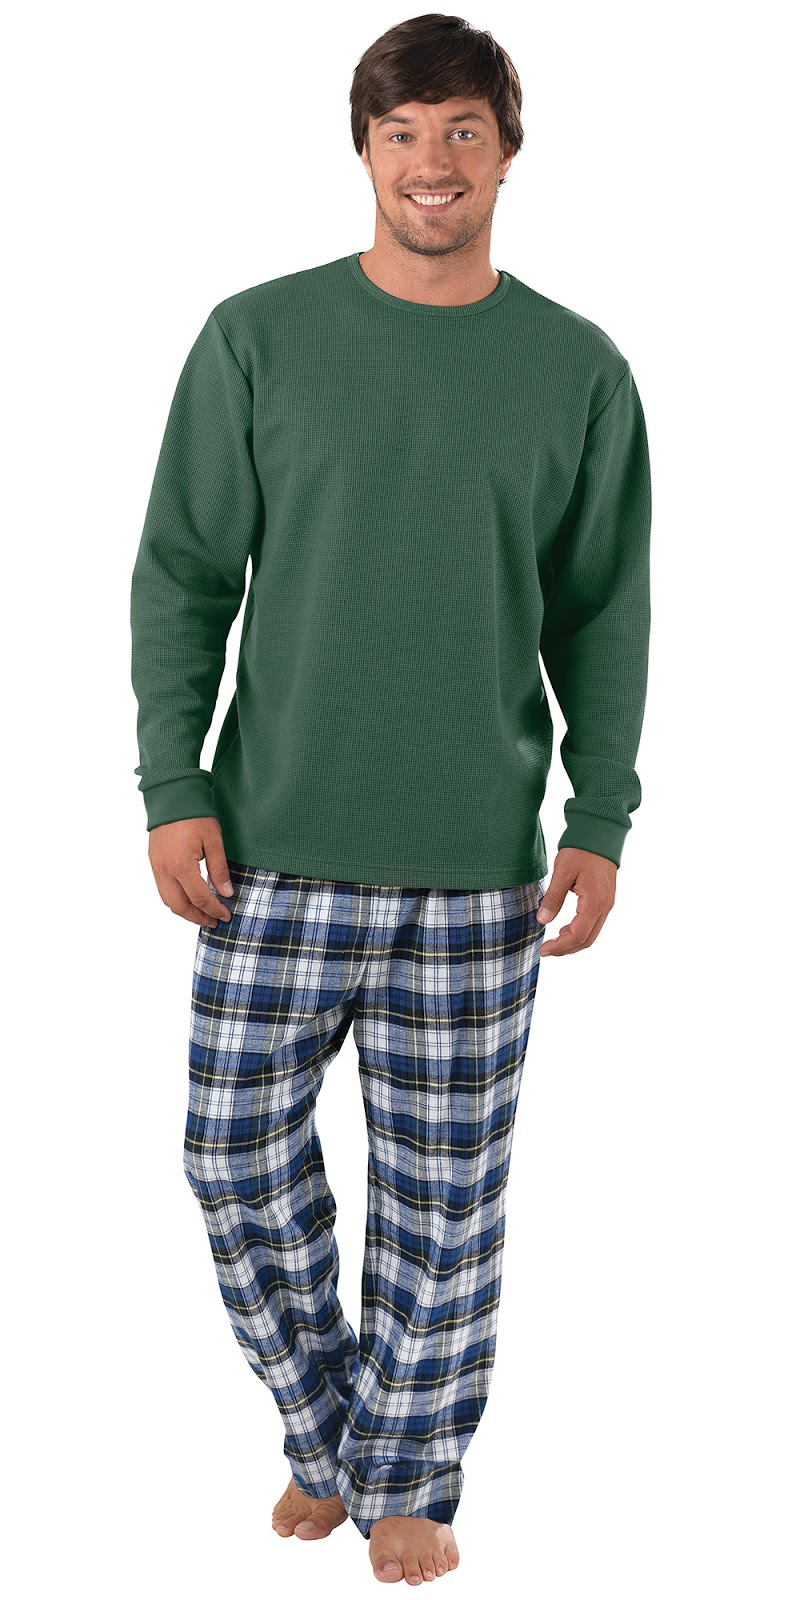 Shop online for Men's Pajamas: Lounge & Sleepwear at distrib-wq9rfuqq.tk Find robes, pajamas & loungewear. Free Shipping. Free Returns. All the time.